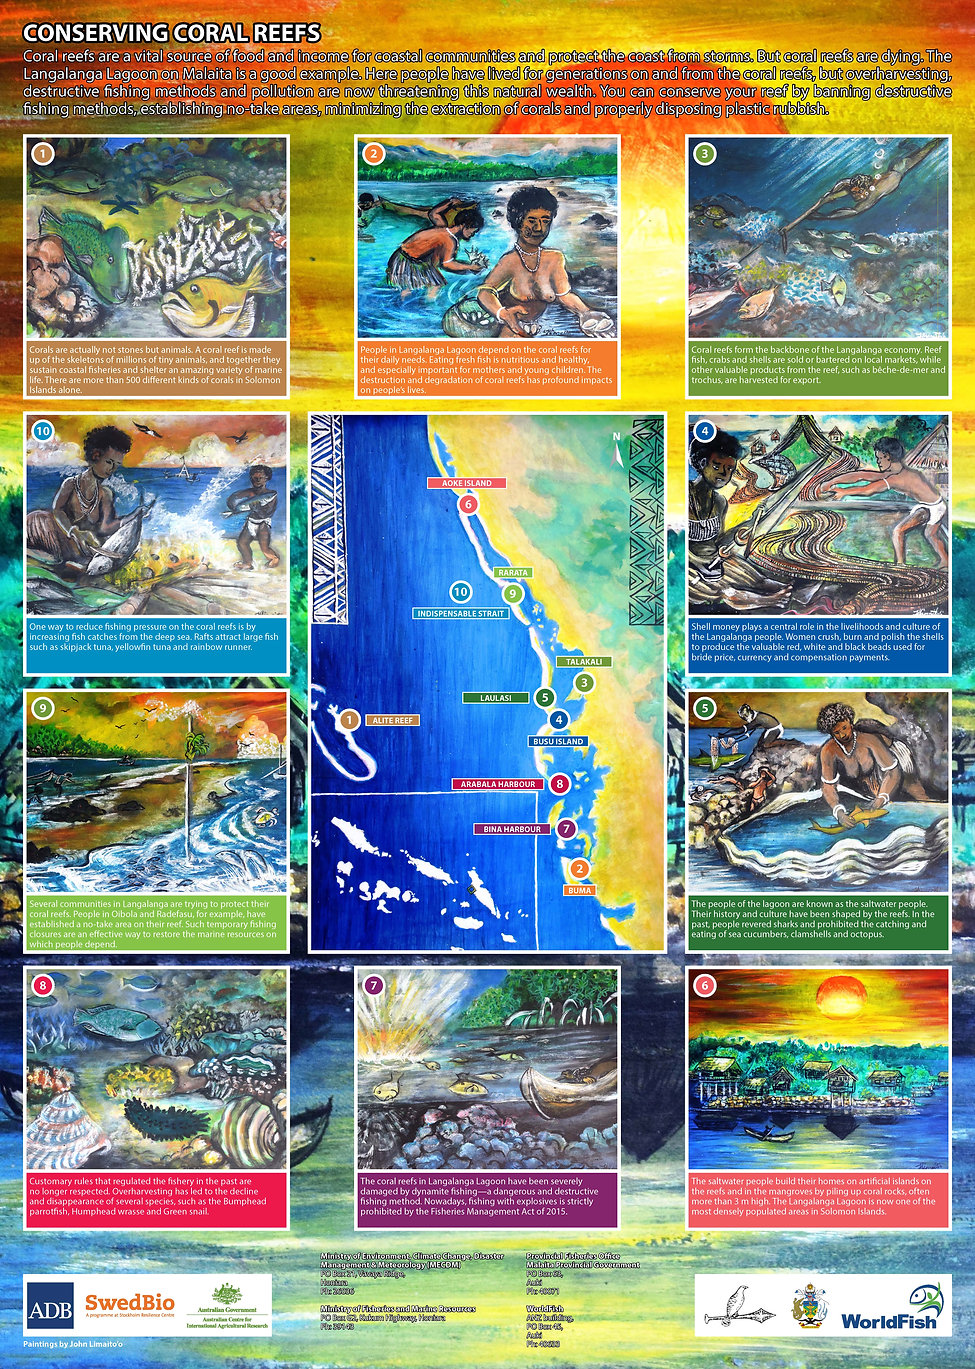 Poster-Conserving-Coral-Reefs.jpg